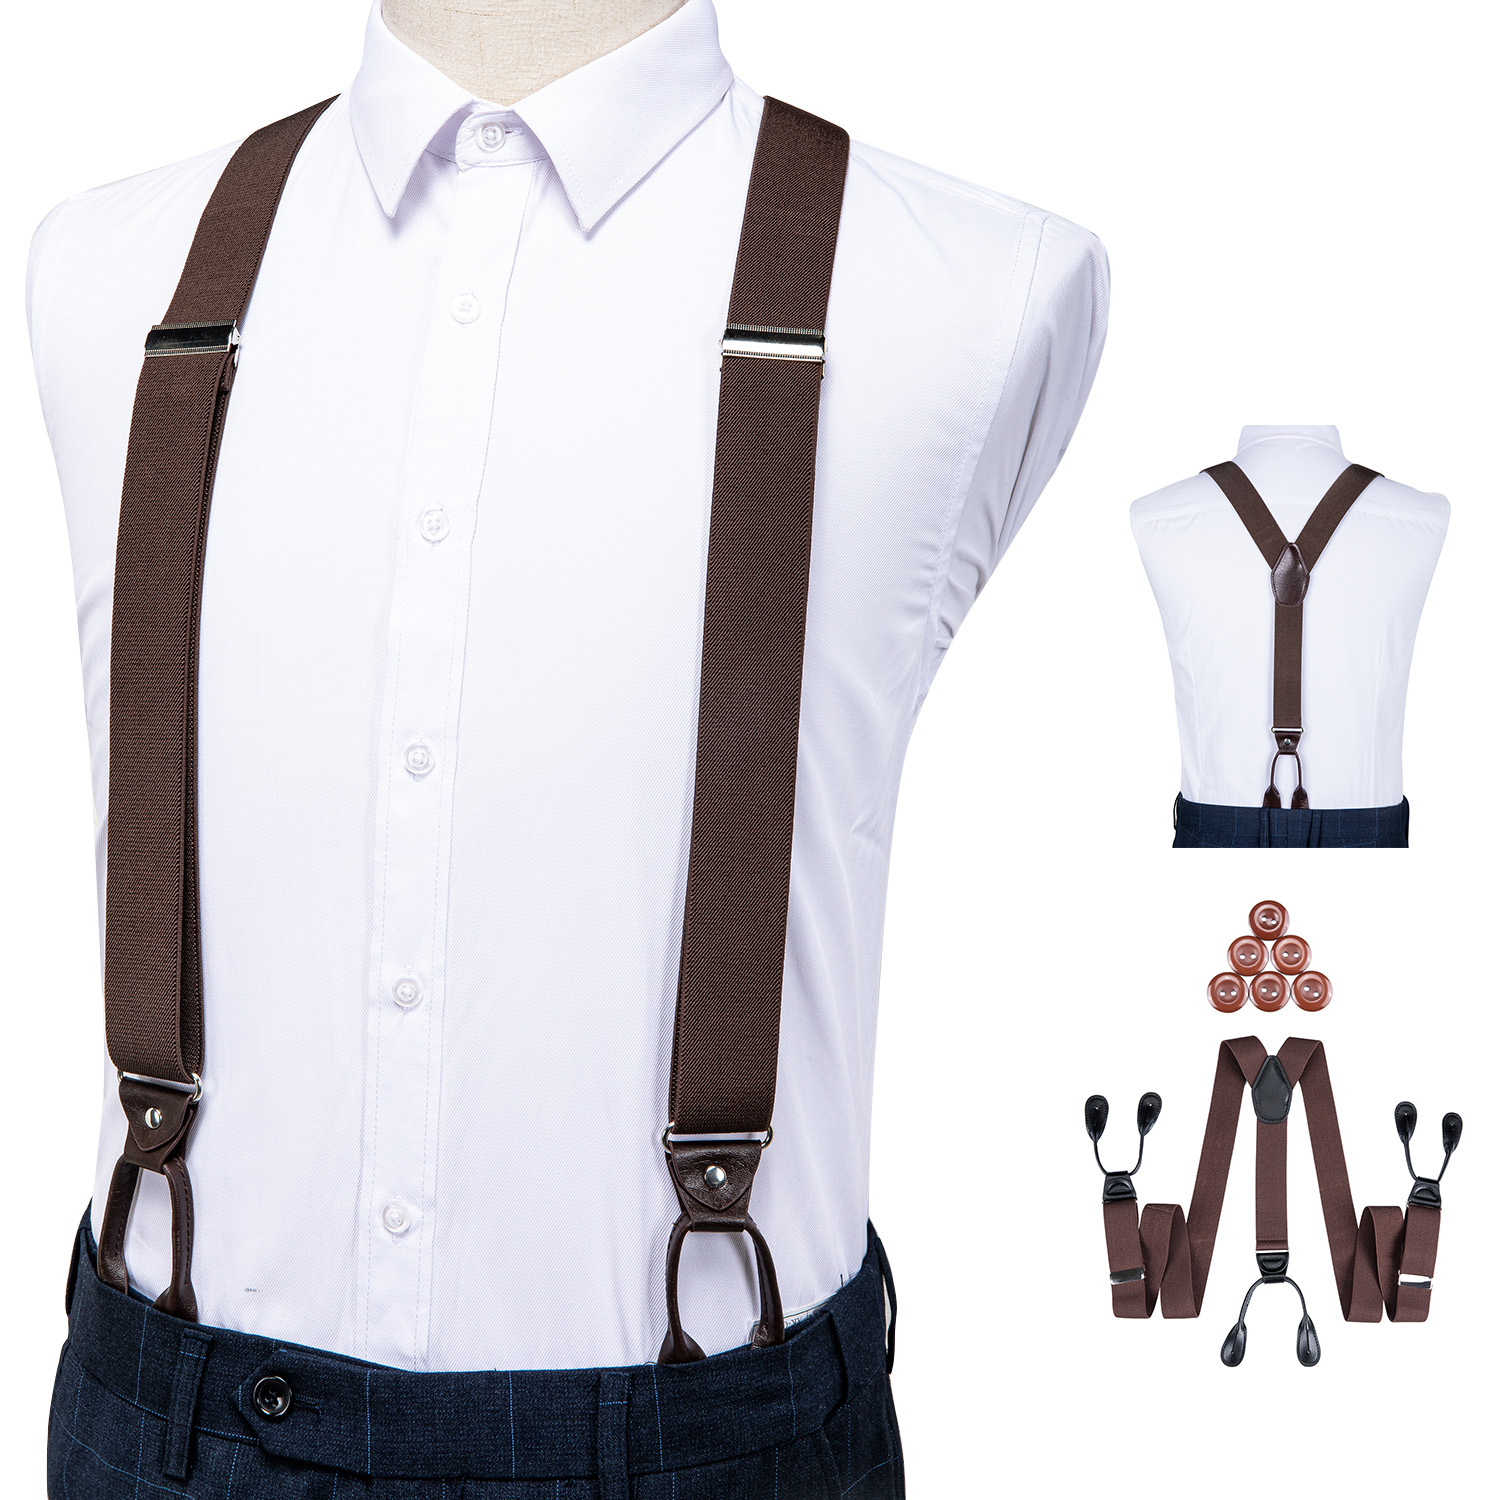 Suspenders For Men Leather Trimmed Button End Elastic Tuxedo Y Back Adjustable Mens Fashion Suspenders Pant Braces Brown DiBanGu